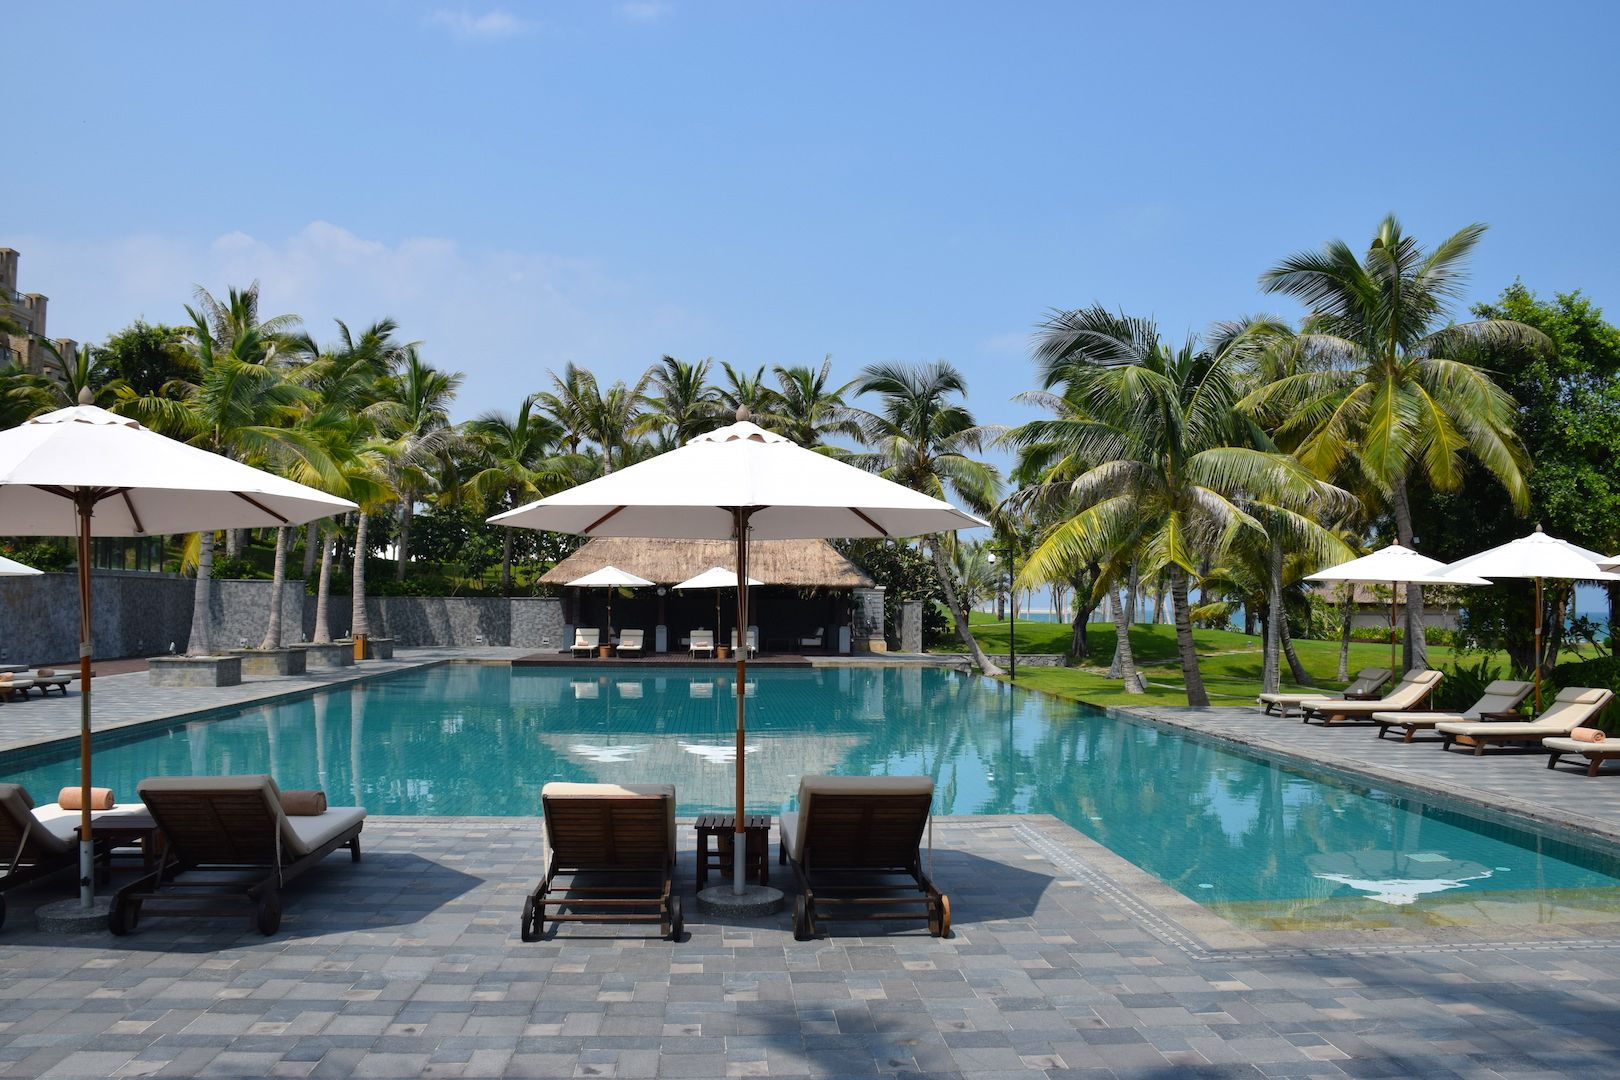 The pool at the Raffles Hotel Hainan in China. TWWT